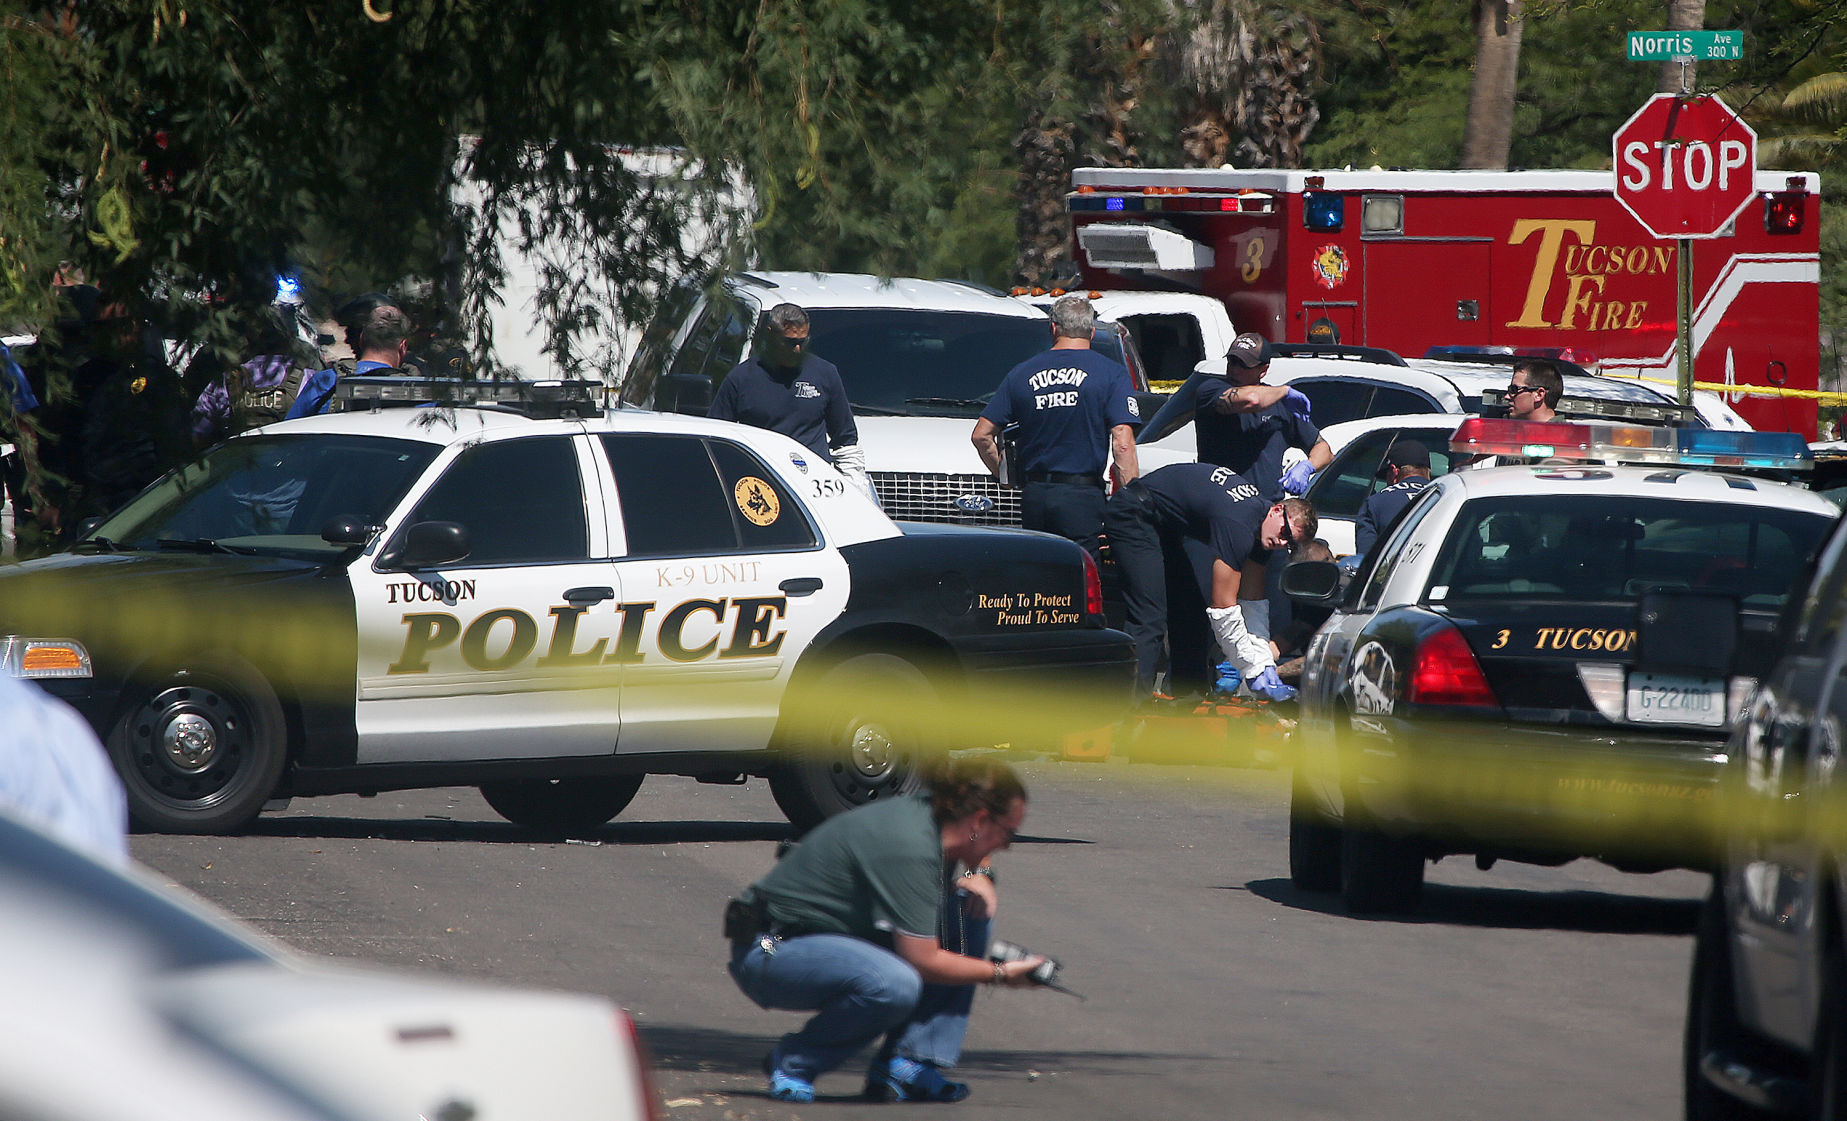 Handson Kweekkas Serre Police Tucson Bank Robber Dead After Chase Shootout Crime